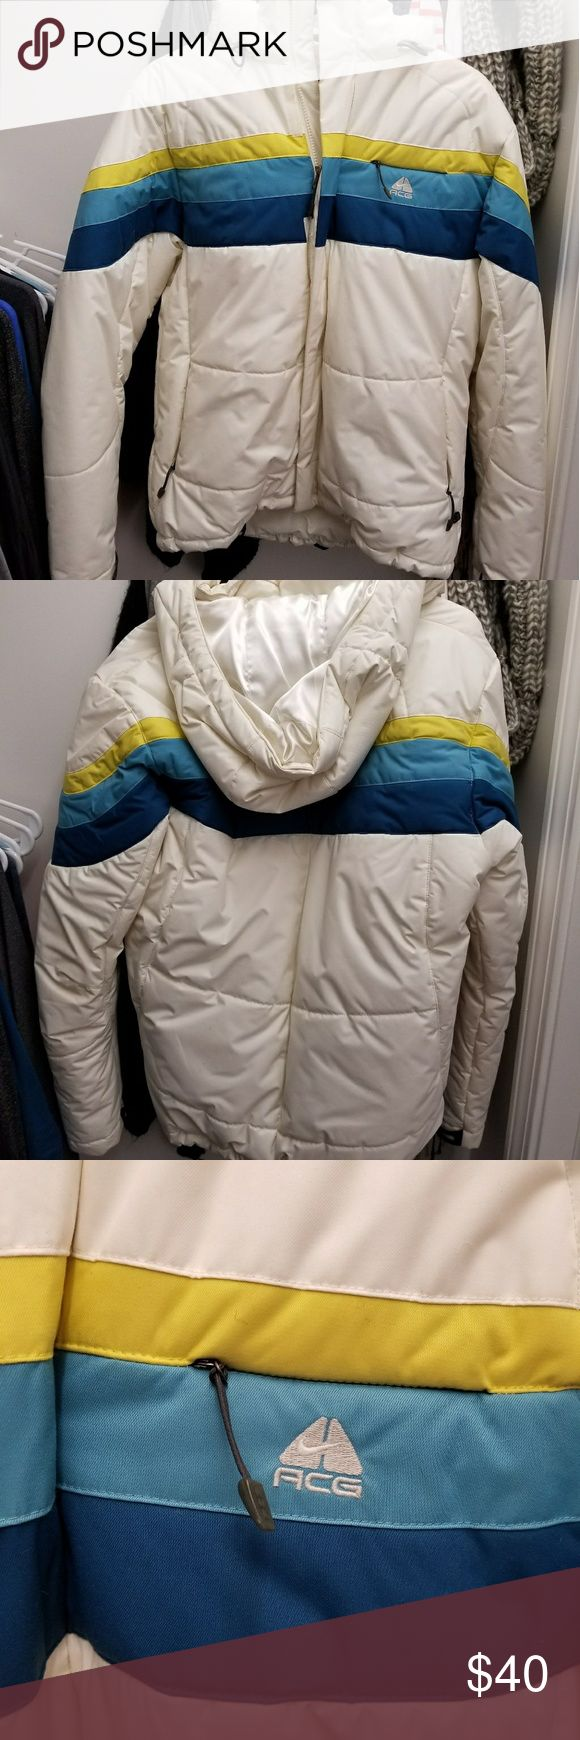 Nike Winter Coat Like New Like New winter Nike coat!!! White blues and yellow colors. Size Large in excellent condition! Only worn maybe twice. Nike Jackets & Coats Puffers